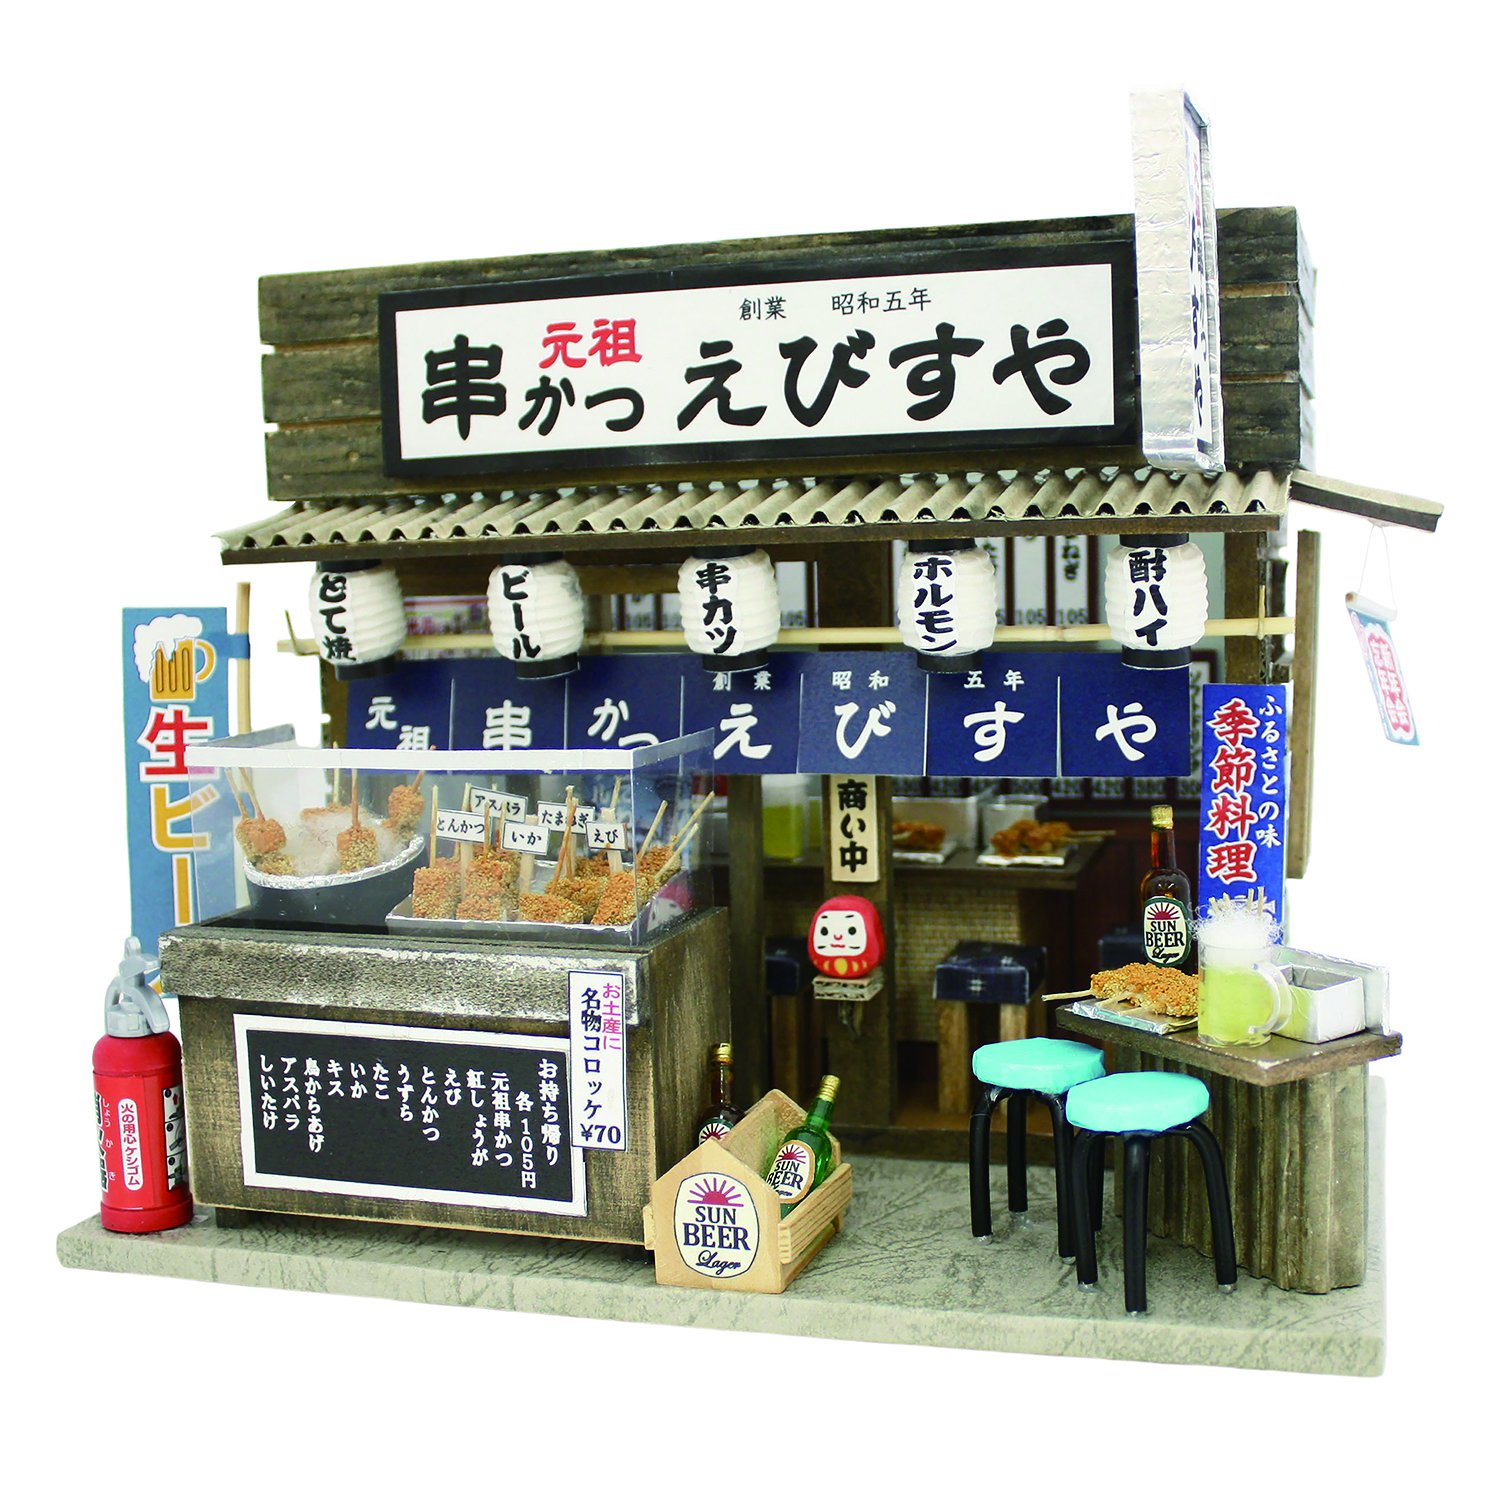 Deep-fried breaded meat or vegetables on skewers shop 8852 Billy handmade dollhouse Kit Naniwa Series by Billy 55